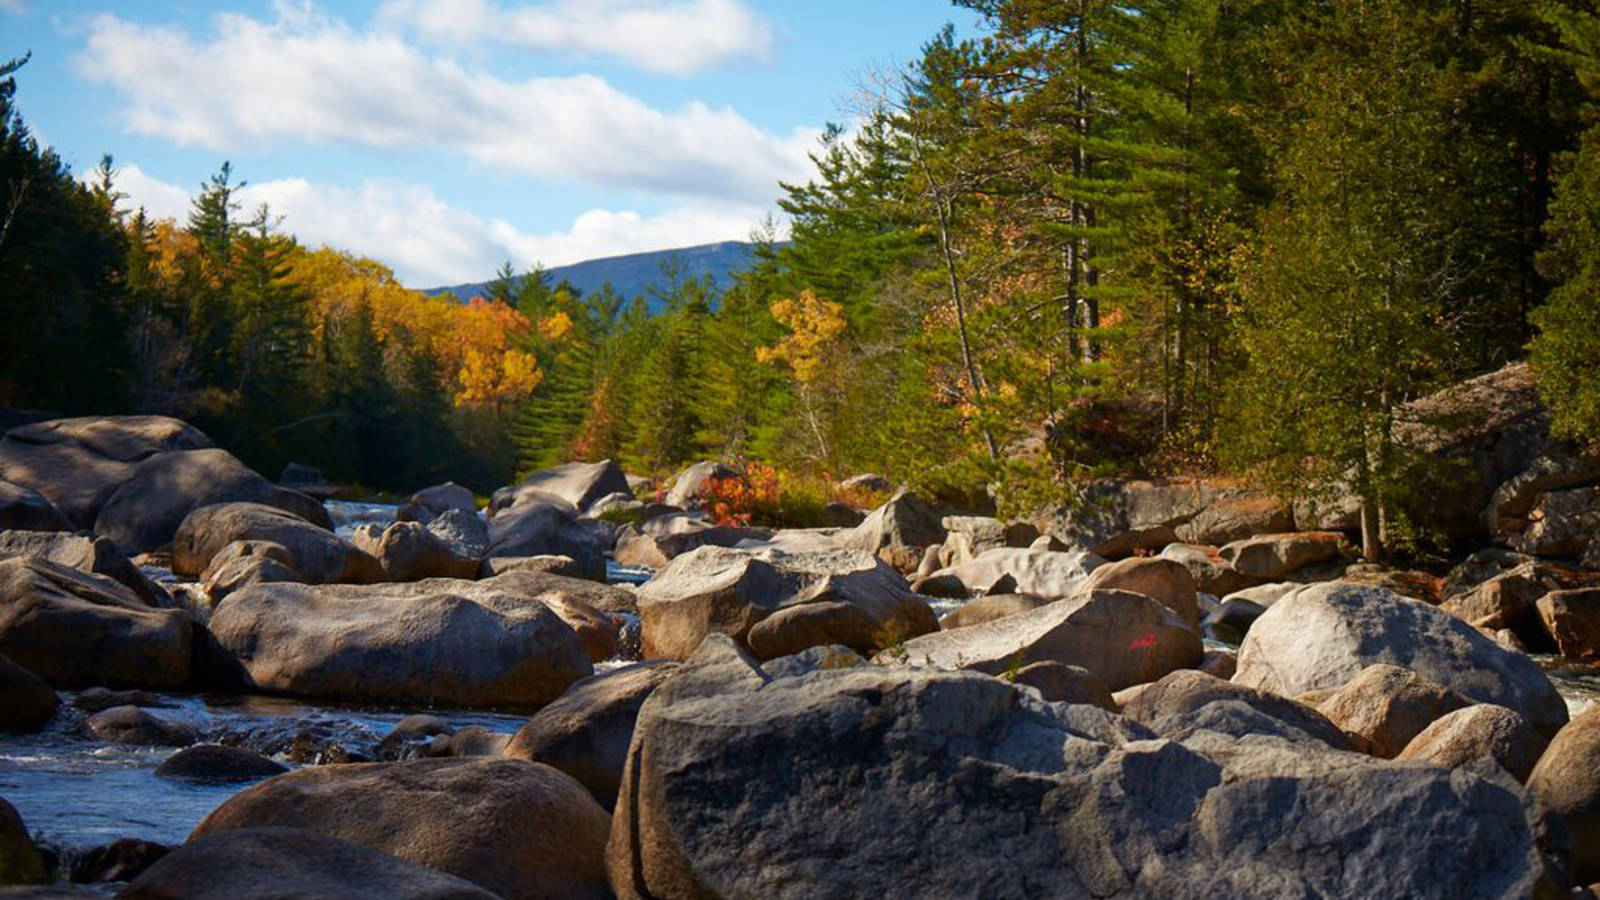 Interior Secretary Jewell Applauds President's Designation of the First National Monument to Preserve Landscape, History & Culture of Maine's North Woods